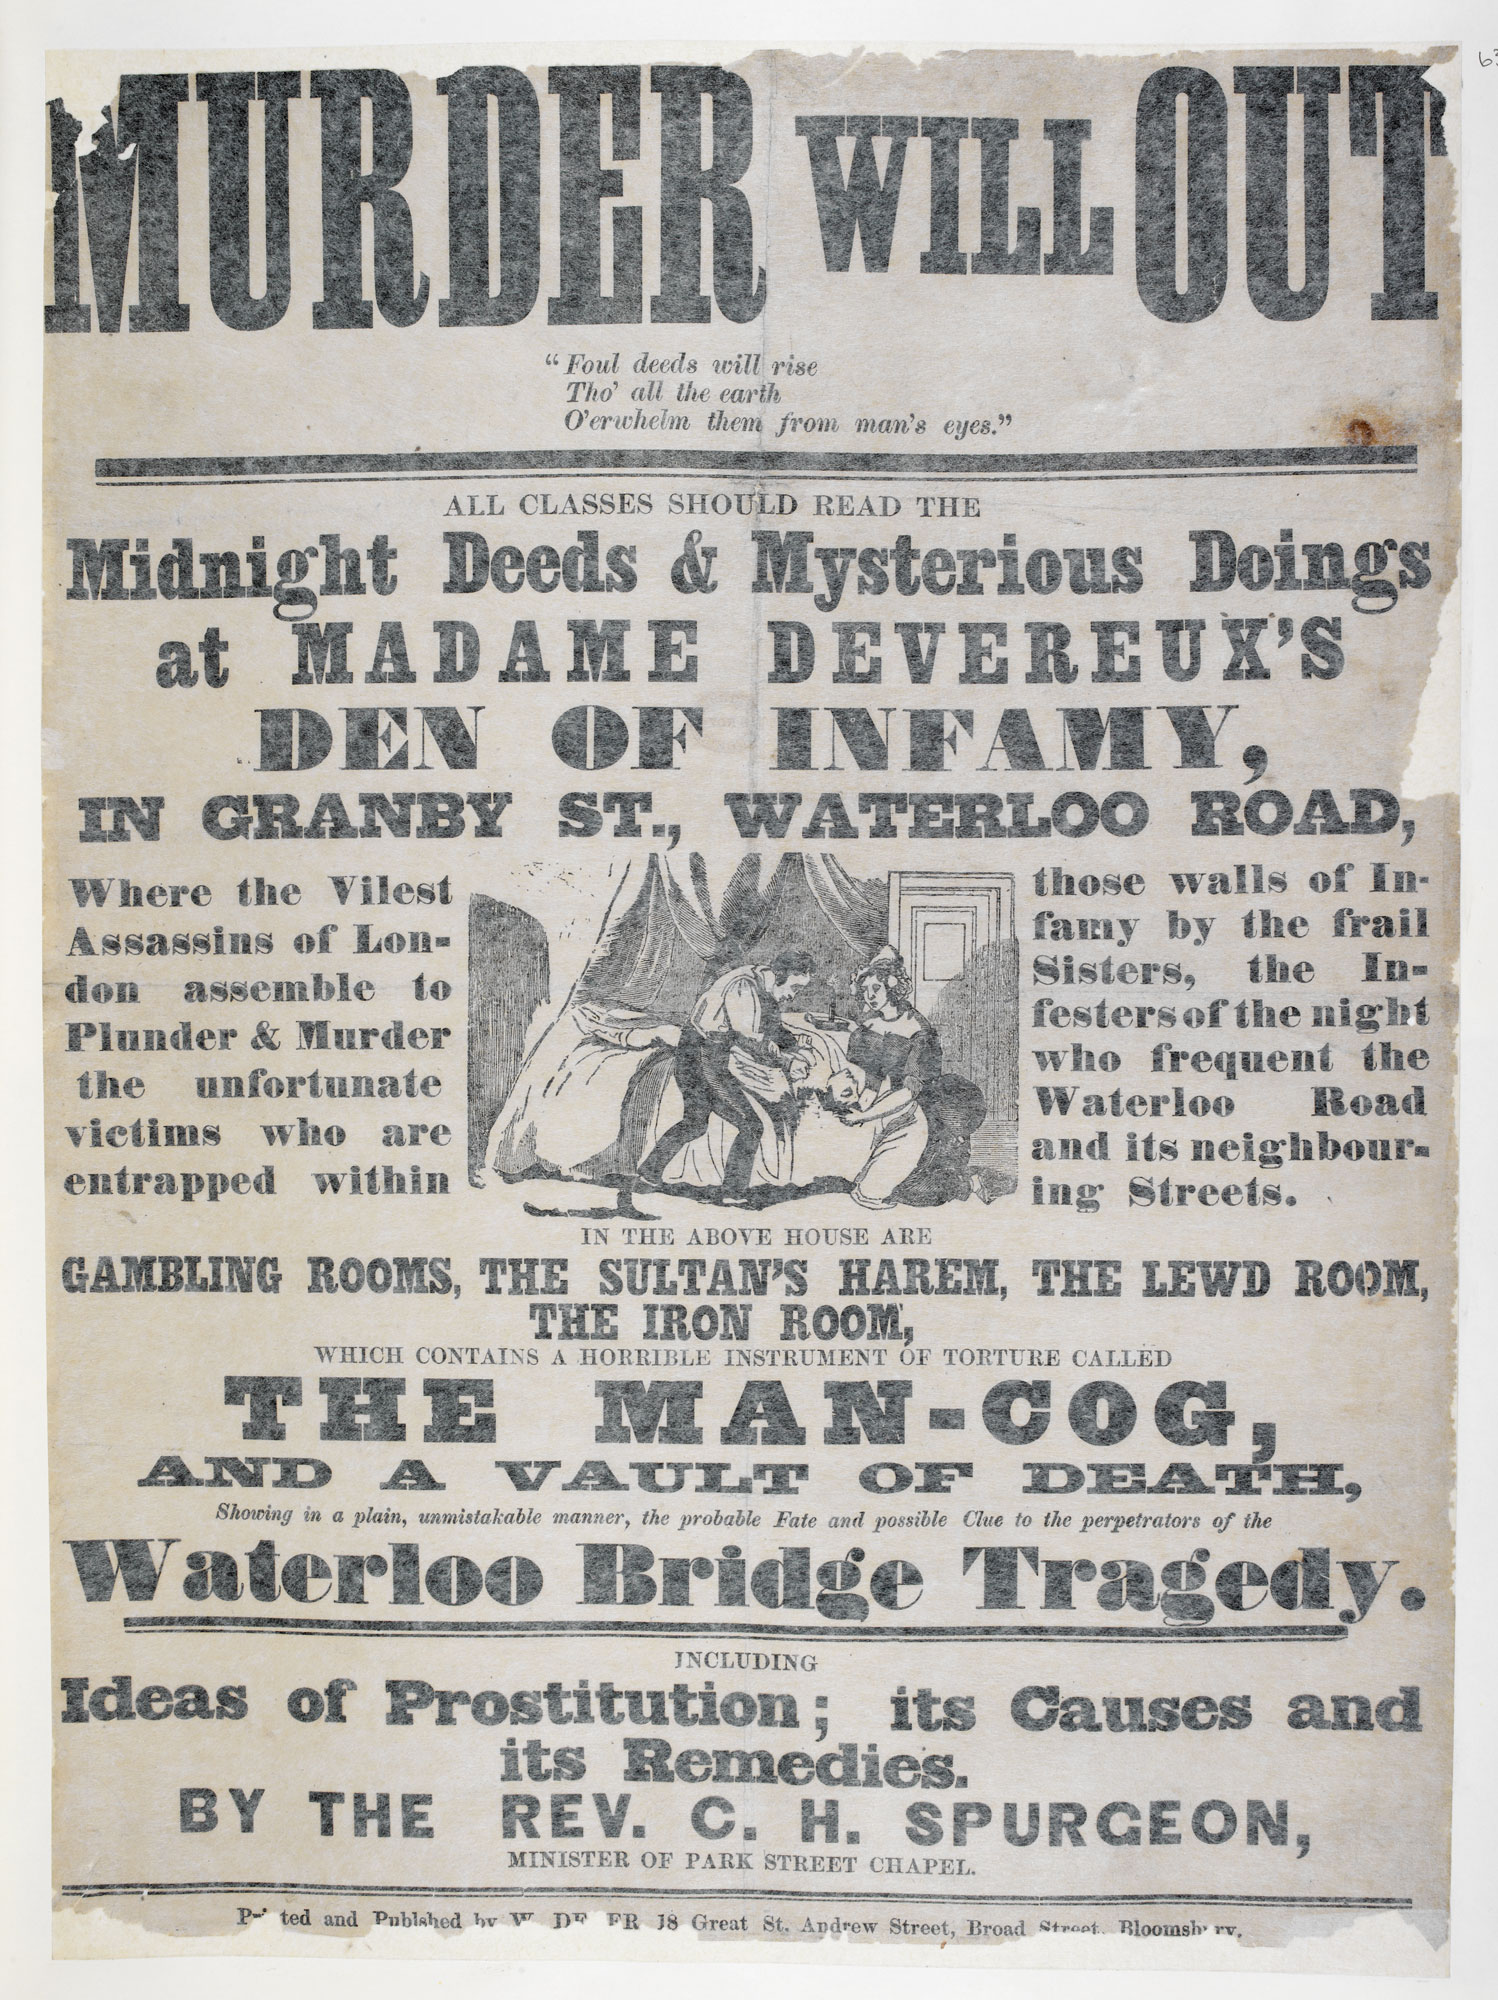 Broadside on the 'Waterloo Bridge Tragedy' - The British Library